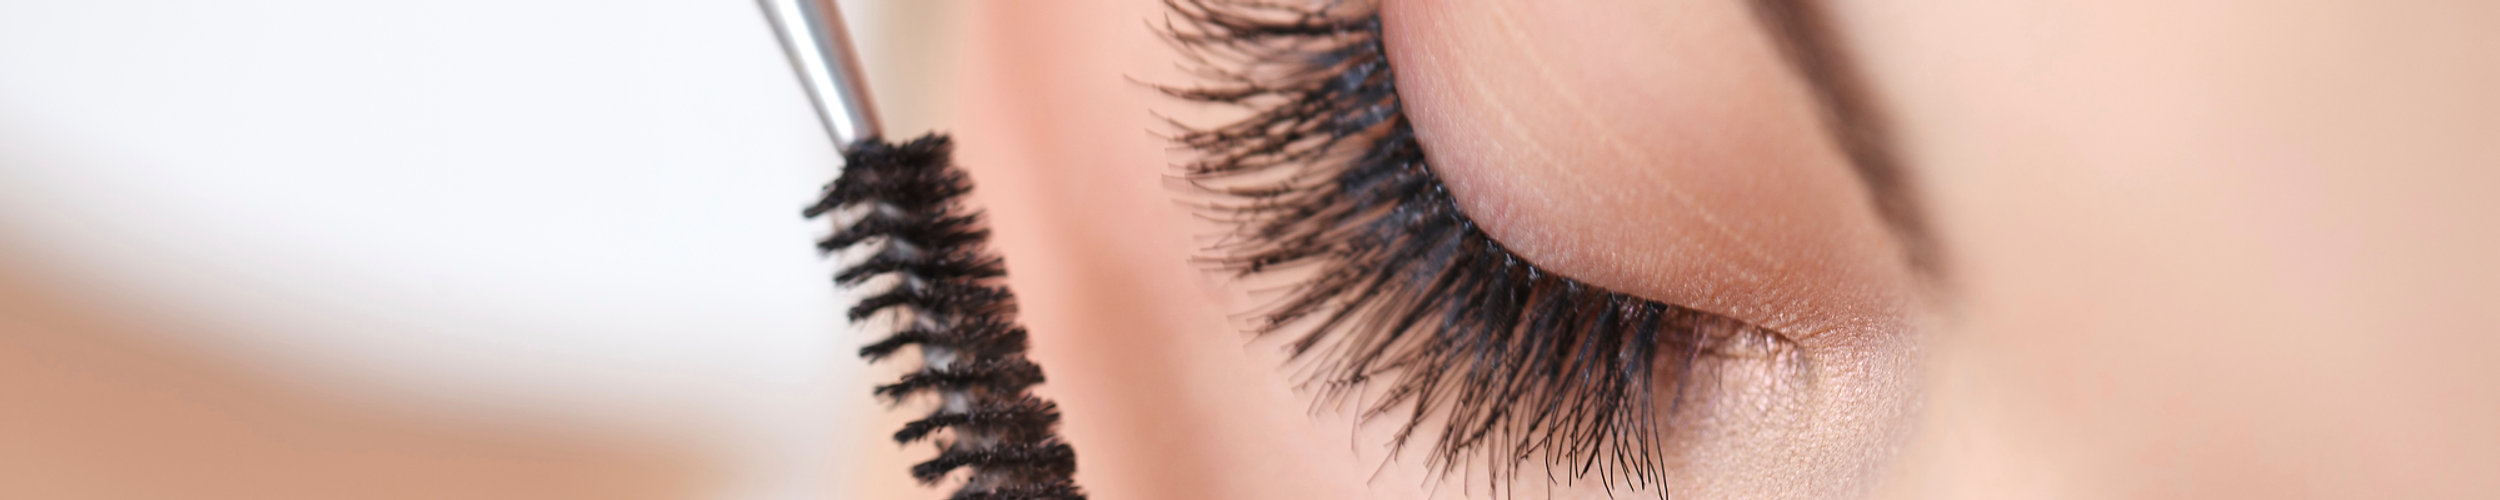 Beautypalast Eye Lashes